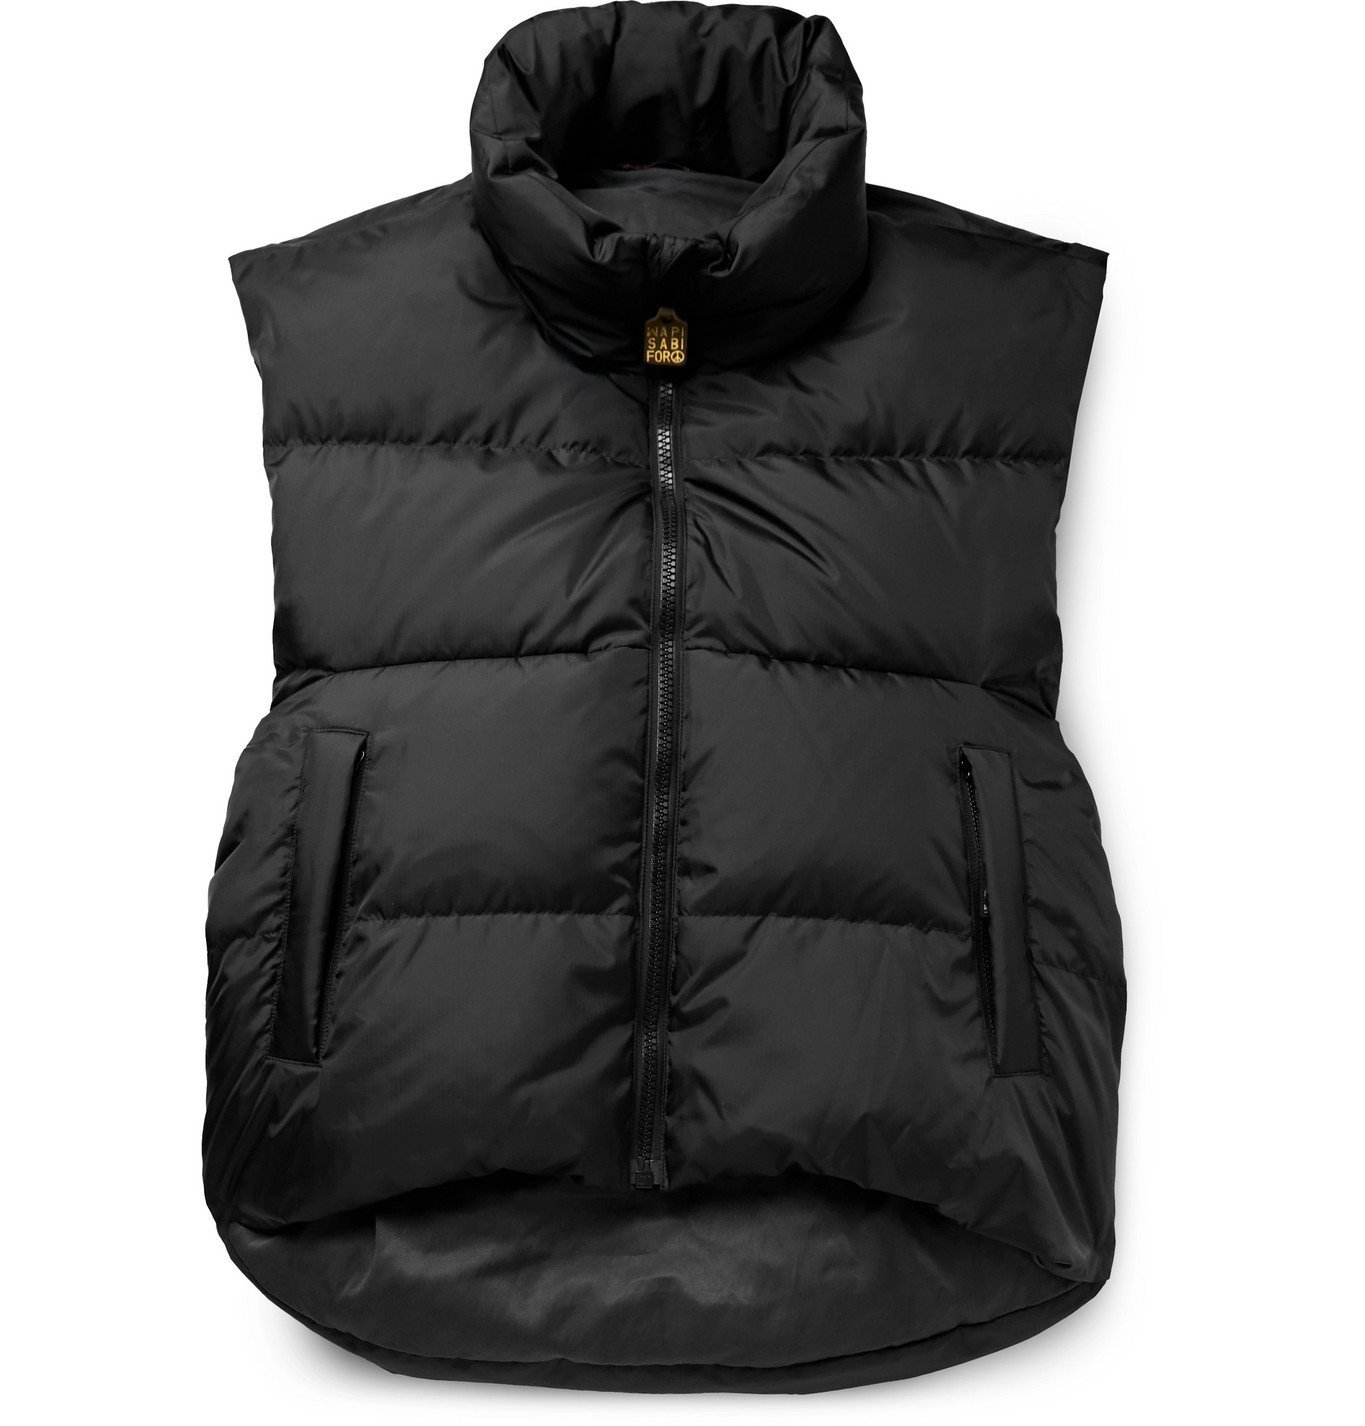 KAPITAL - Burger Keel Oversized Reversible Quilted Ripstop and Shell Down Gilet - Black